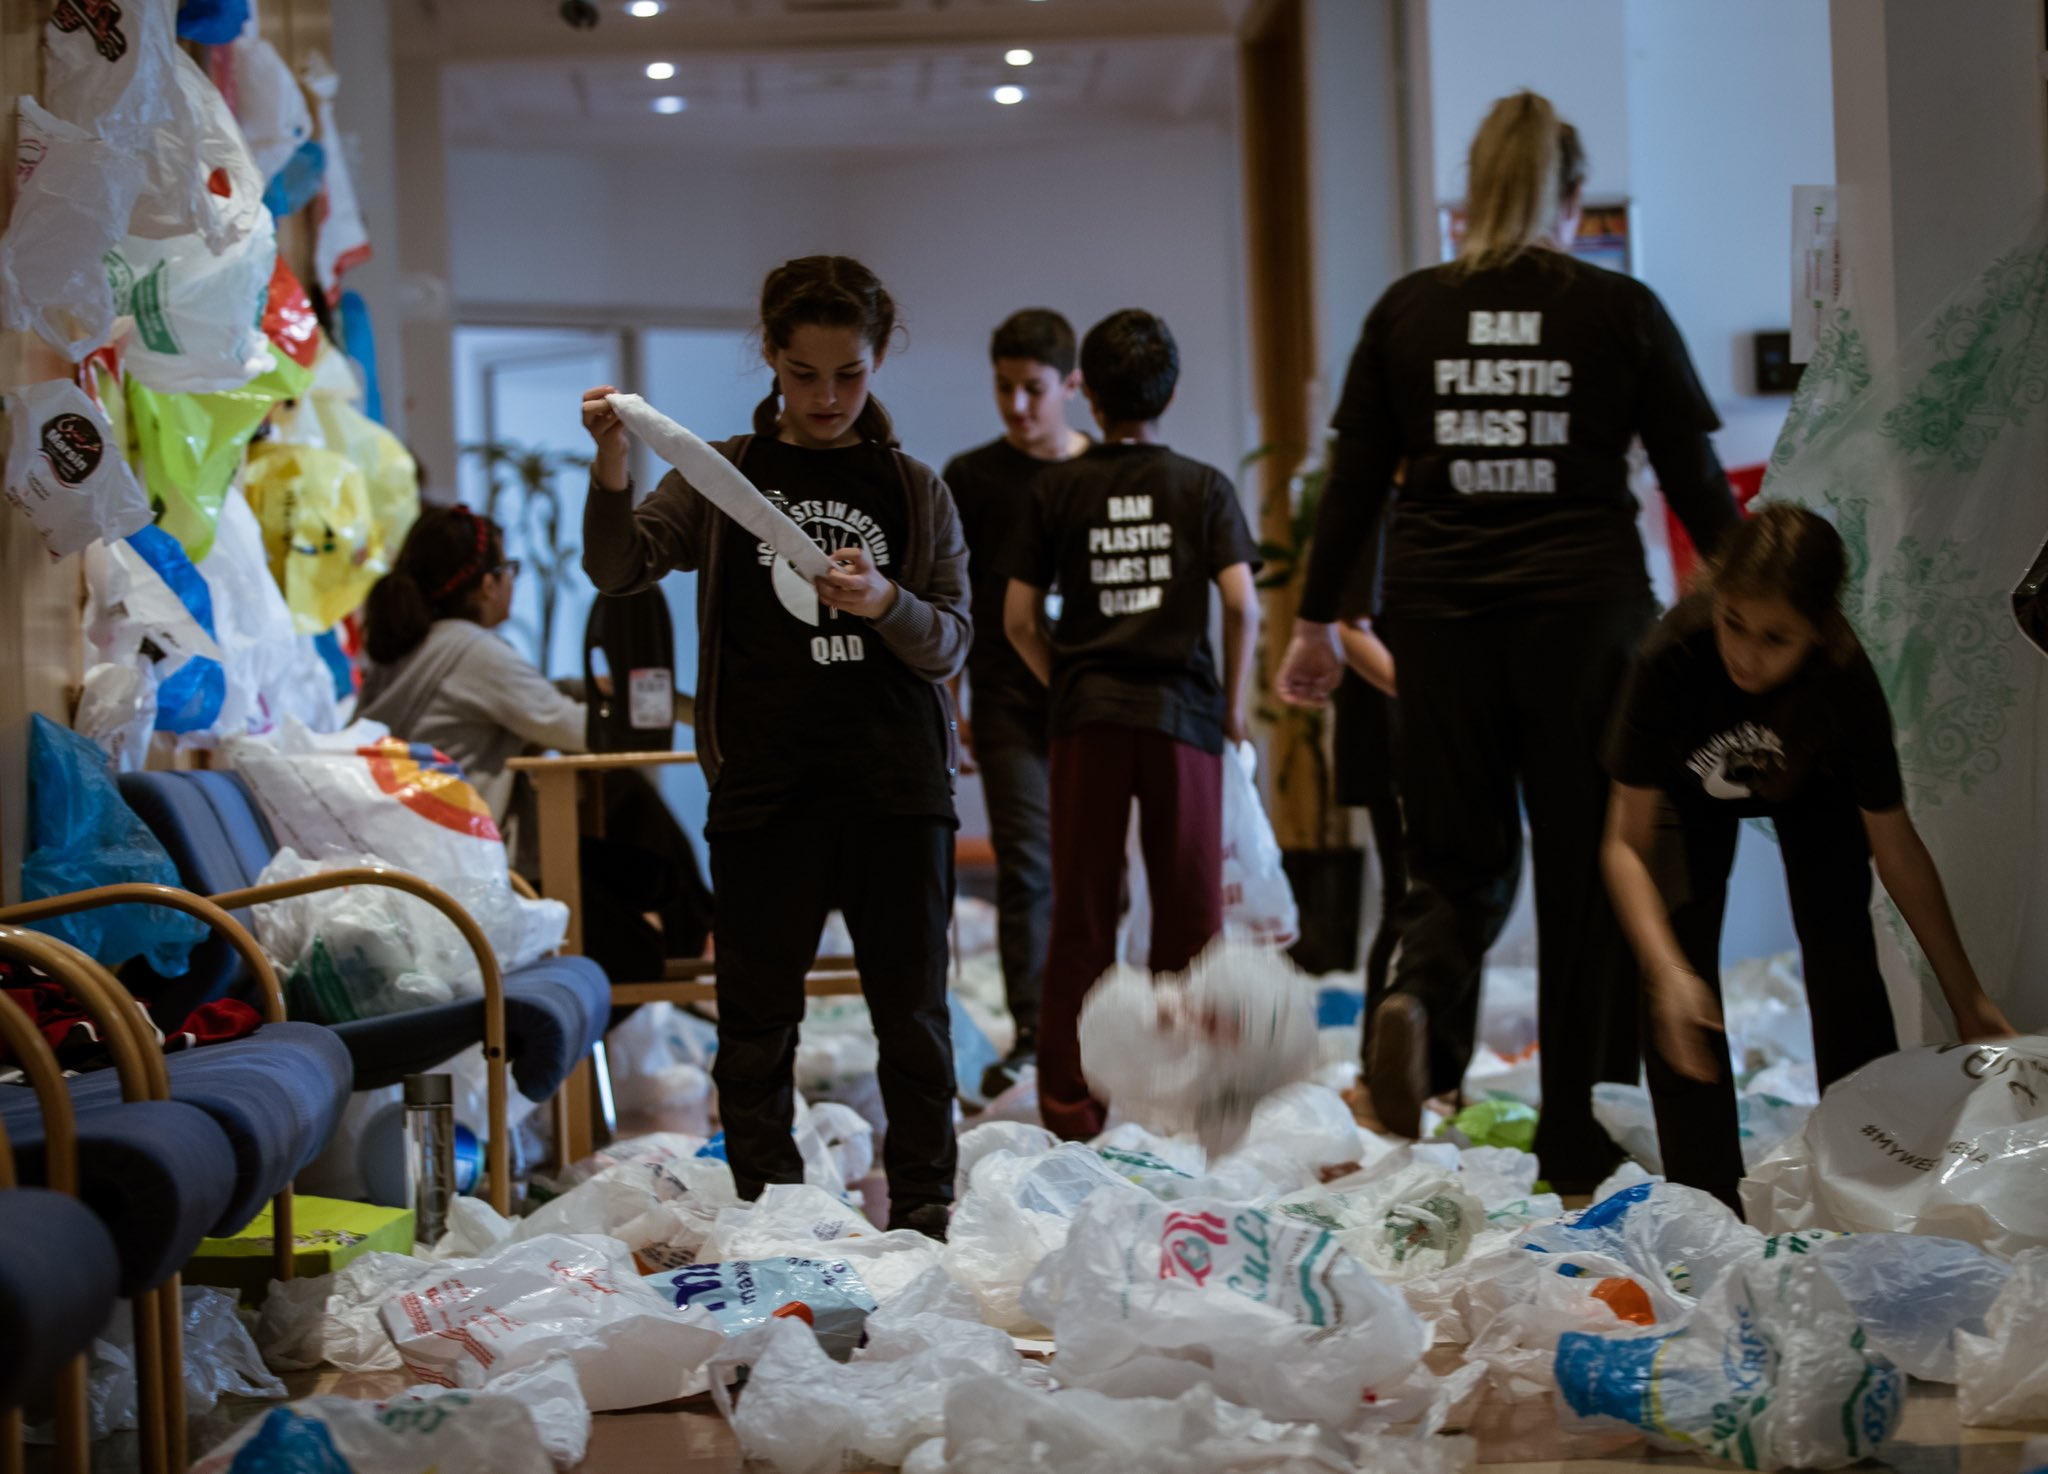 Young activists in Qatar call for action against plastic bags